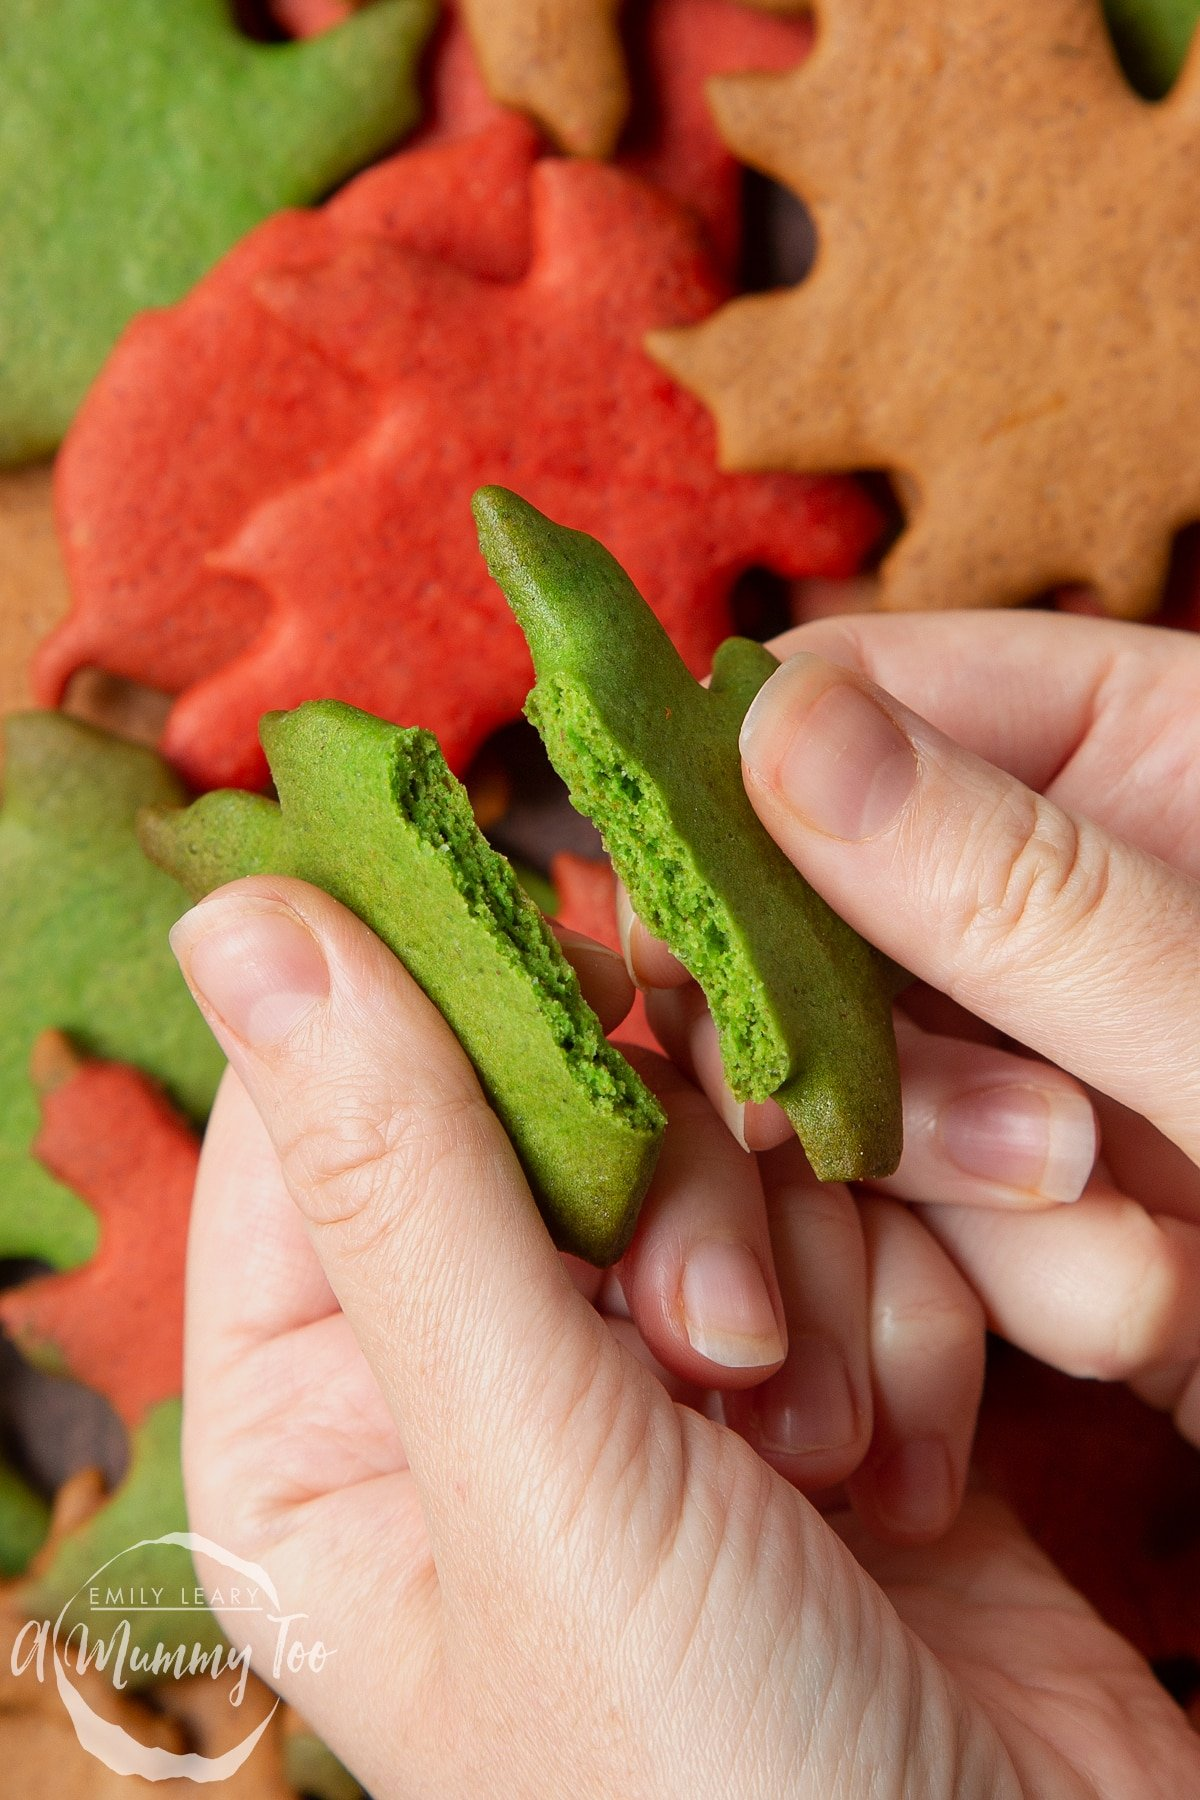 Hands breaking a green autumn biscuit in half above a pile of colourful red, green and brown autumn cookies cut into the shapes of autumn leaves.